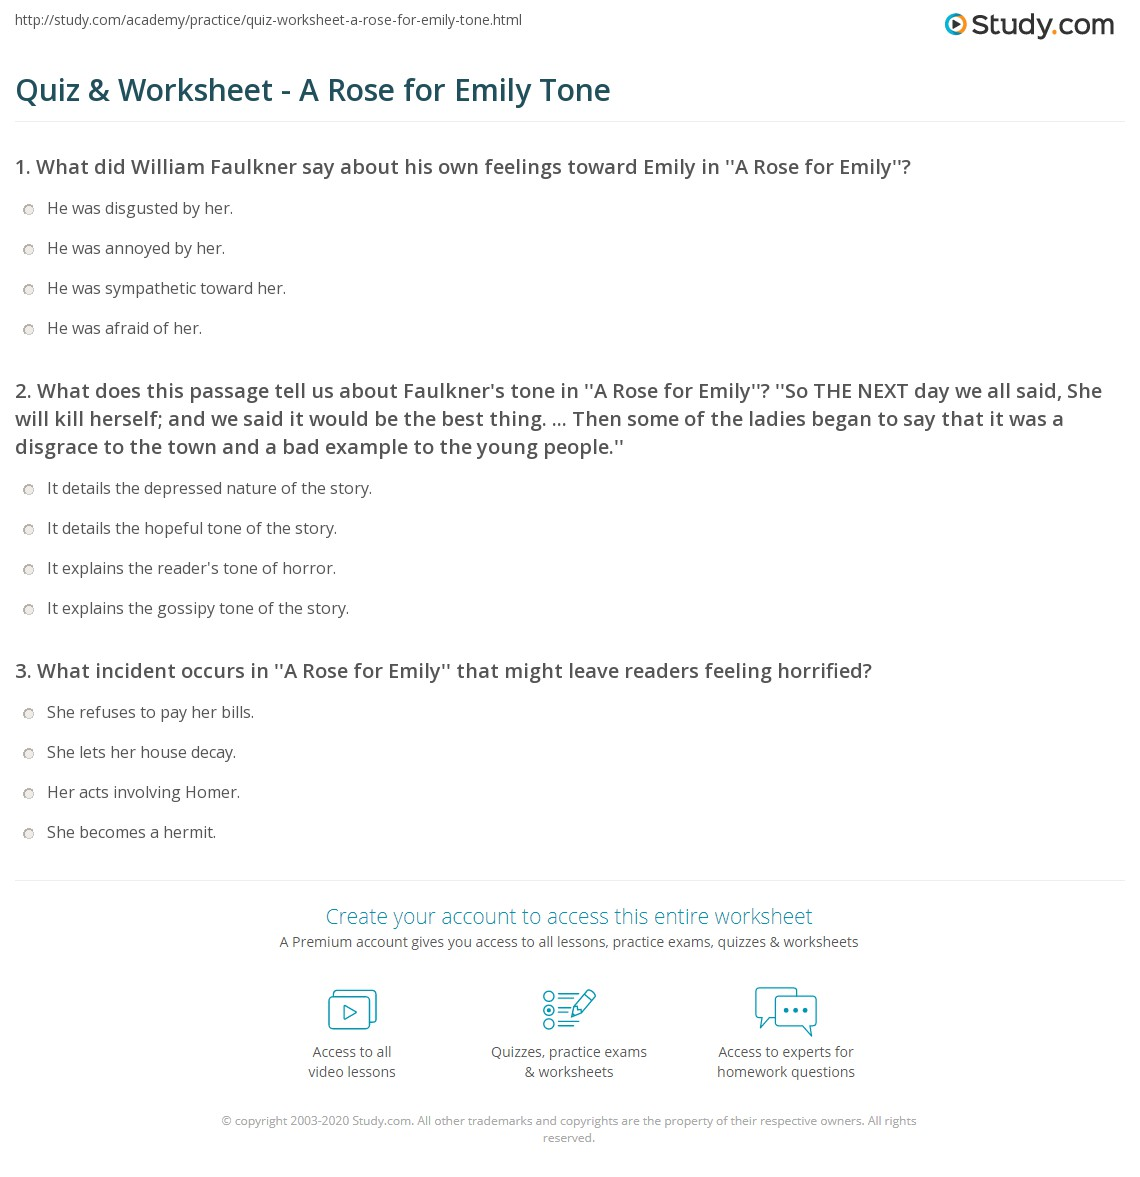 quiz worksheet a rose for emily tone. Black Bedroom Furniture Sets. Home Design Ideas